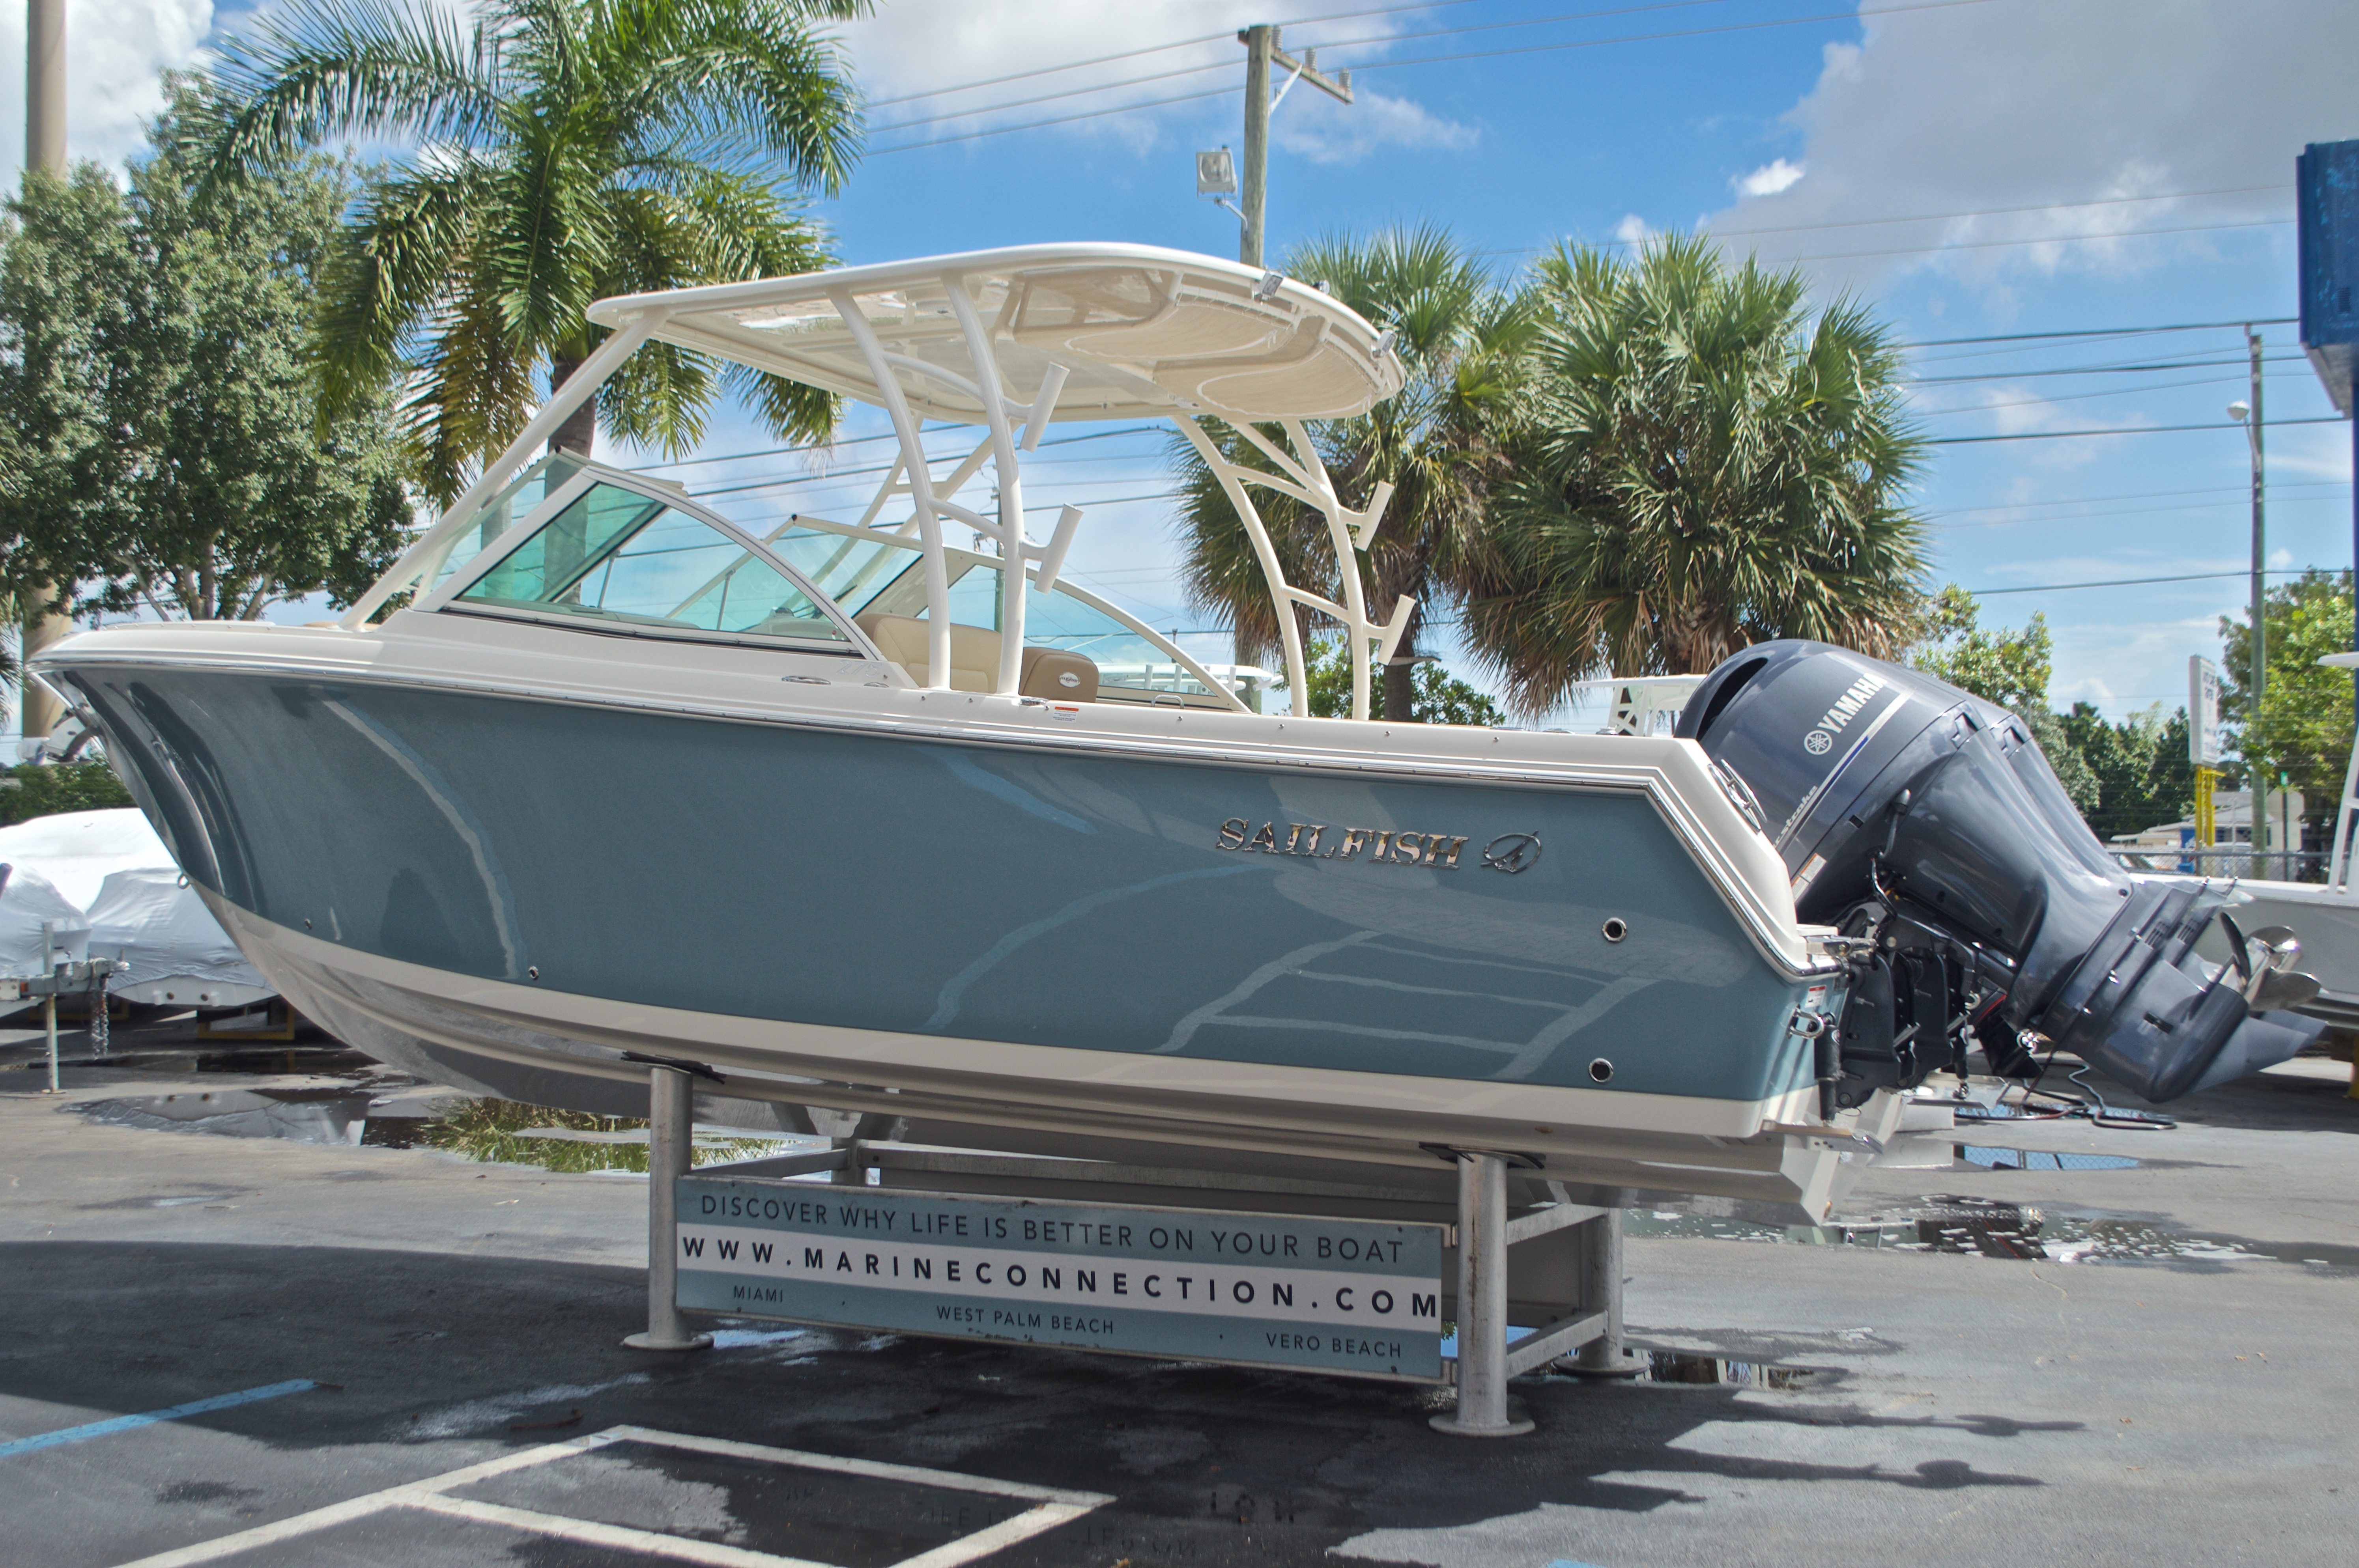 Thumbnail 5 for New 2017 Sailfish 275 Dual Console boat for sale in Vero Beach, FL